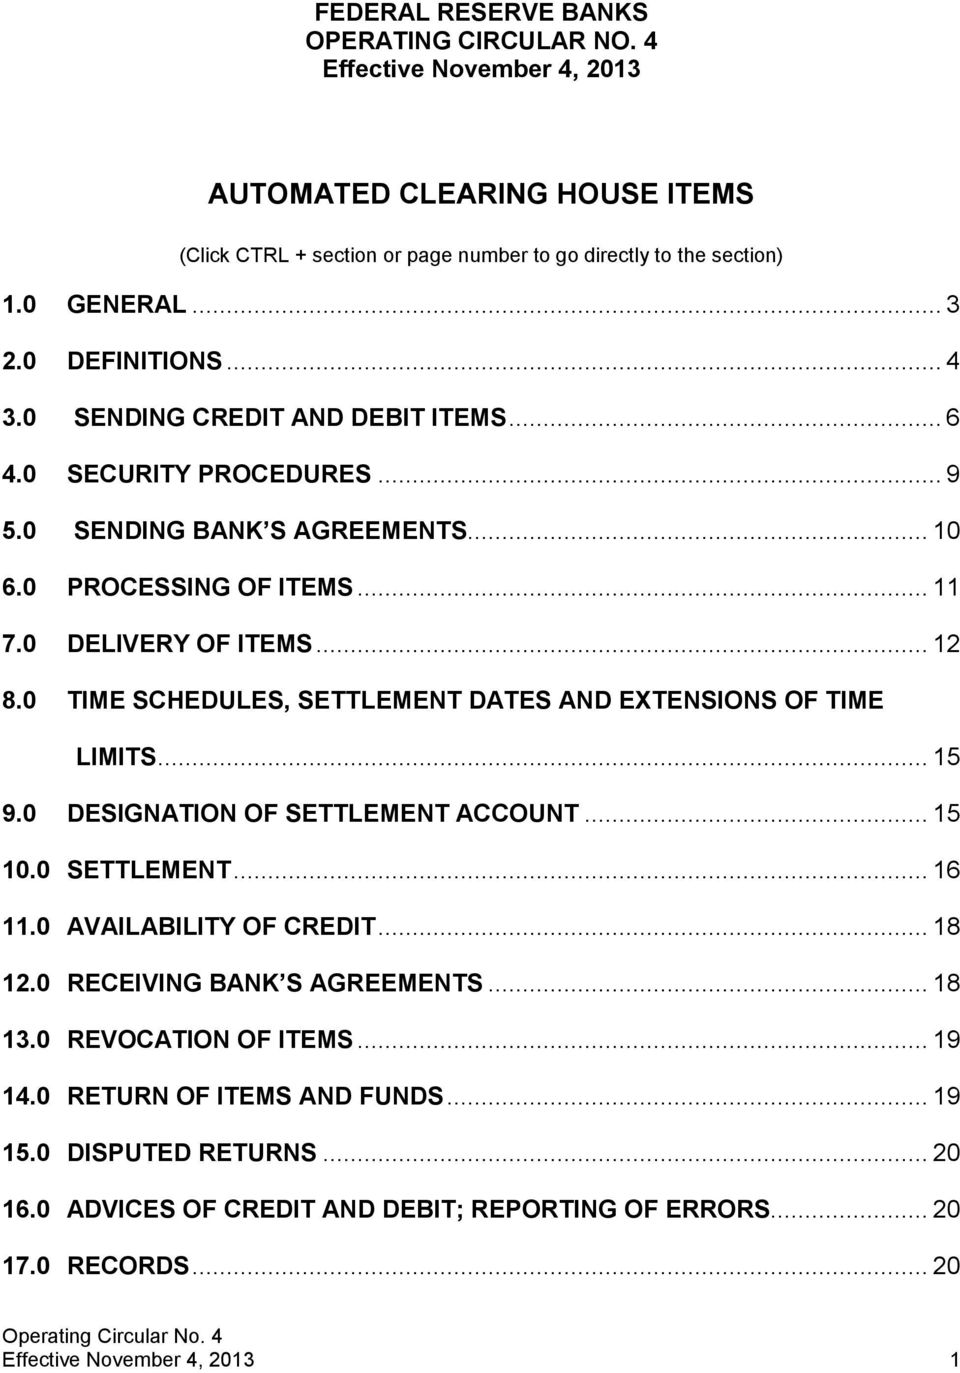 0 TIME SCHEDULES, SETTLEMENT DATES AND EXTENSIONS OF TIME LIMITS... 15 9.0 DESIGNATION OF SETTLEMENT ACCOUNT... 15 10.0 SETTLEMENT... 16 11.0 AVAILABILITY OF CREDIT... 18 12.